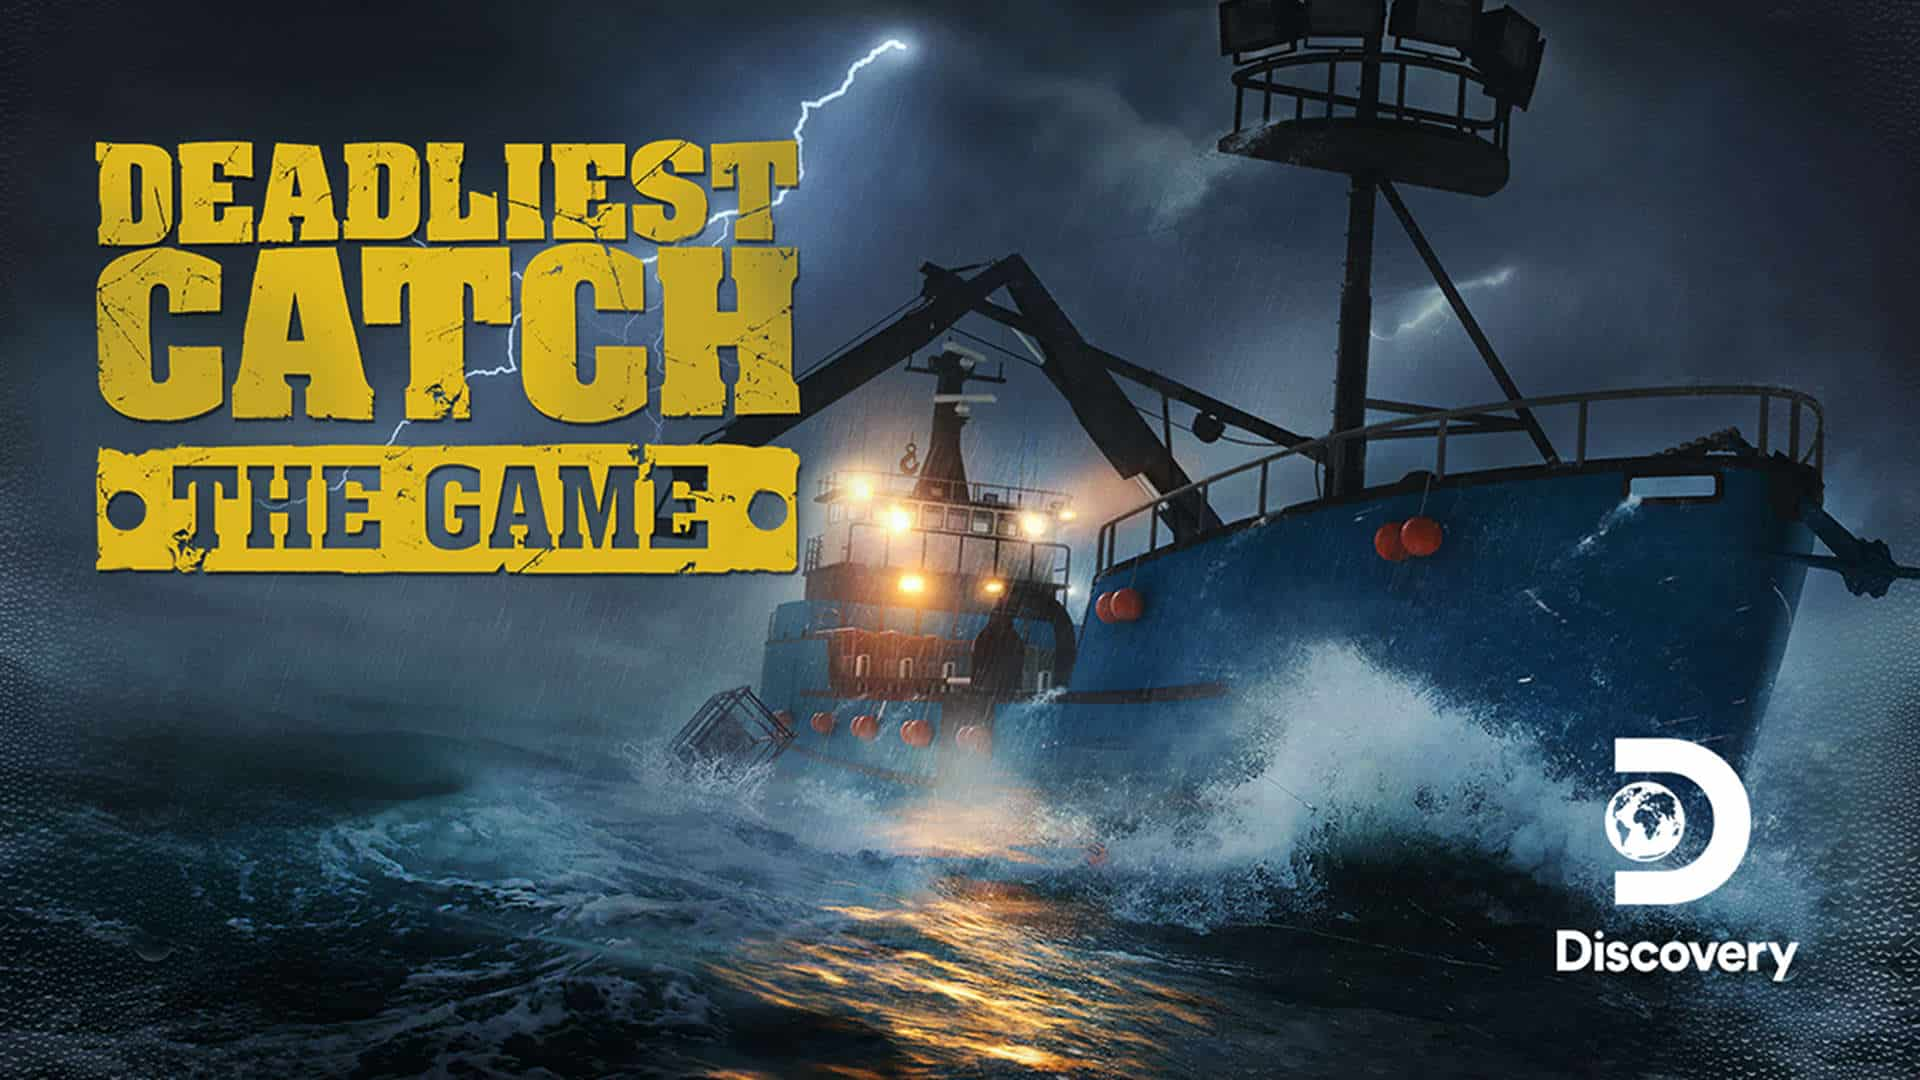 Deadliest Catch The Game 01 press material